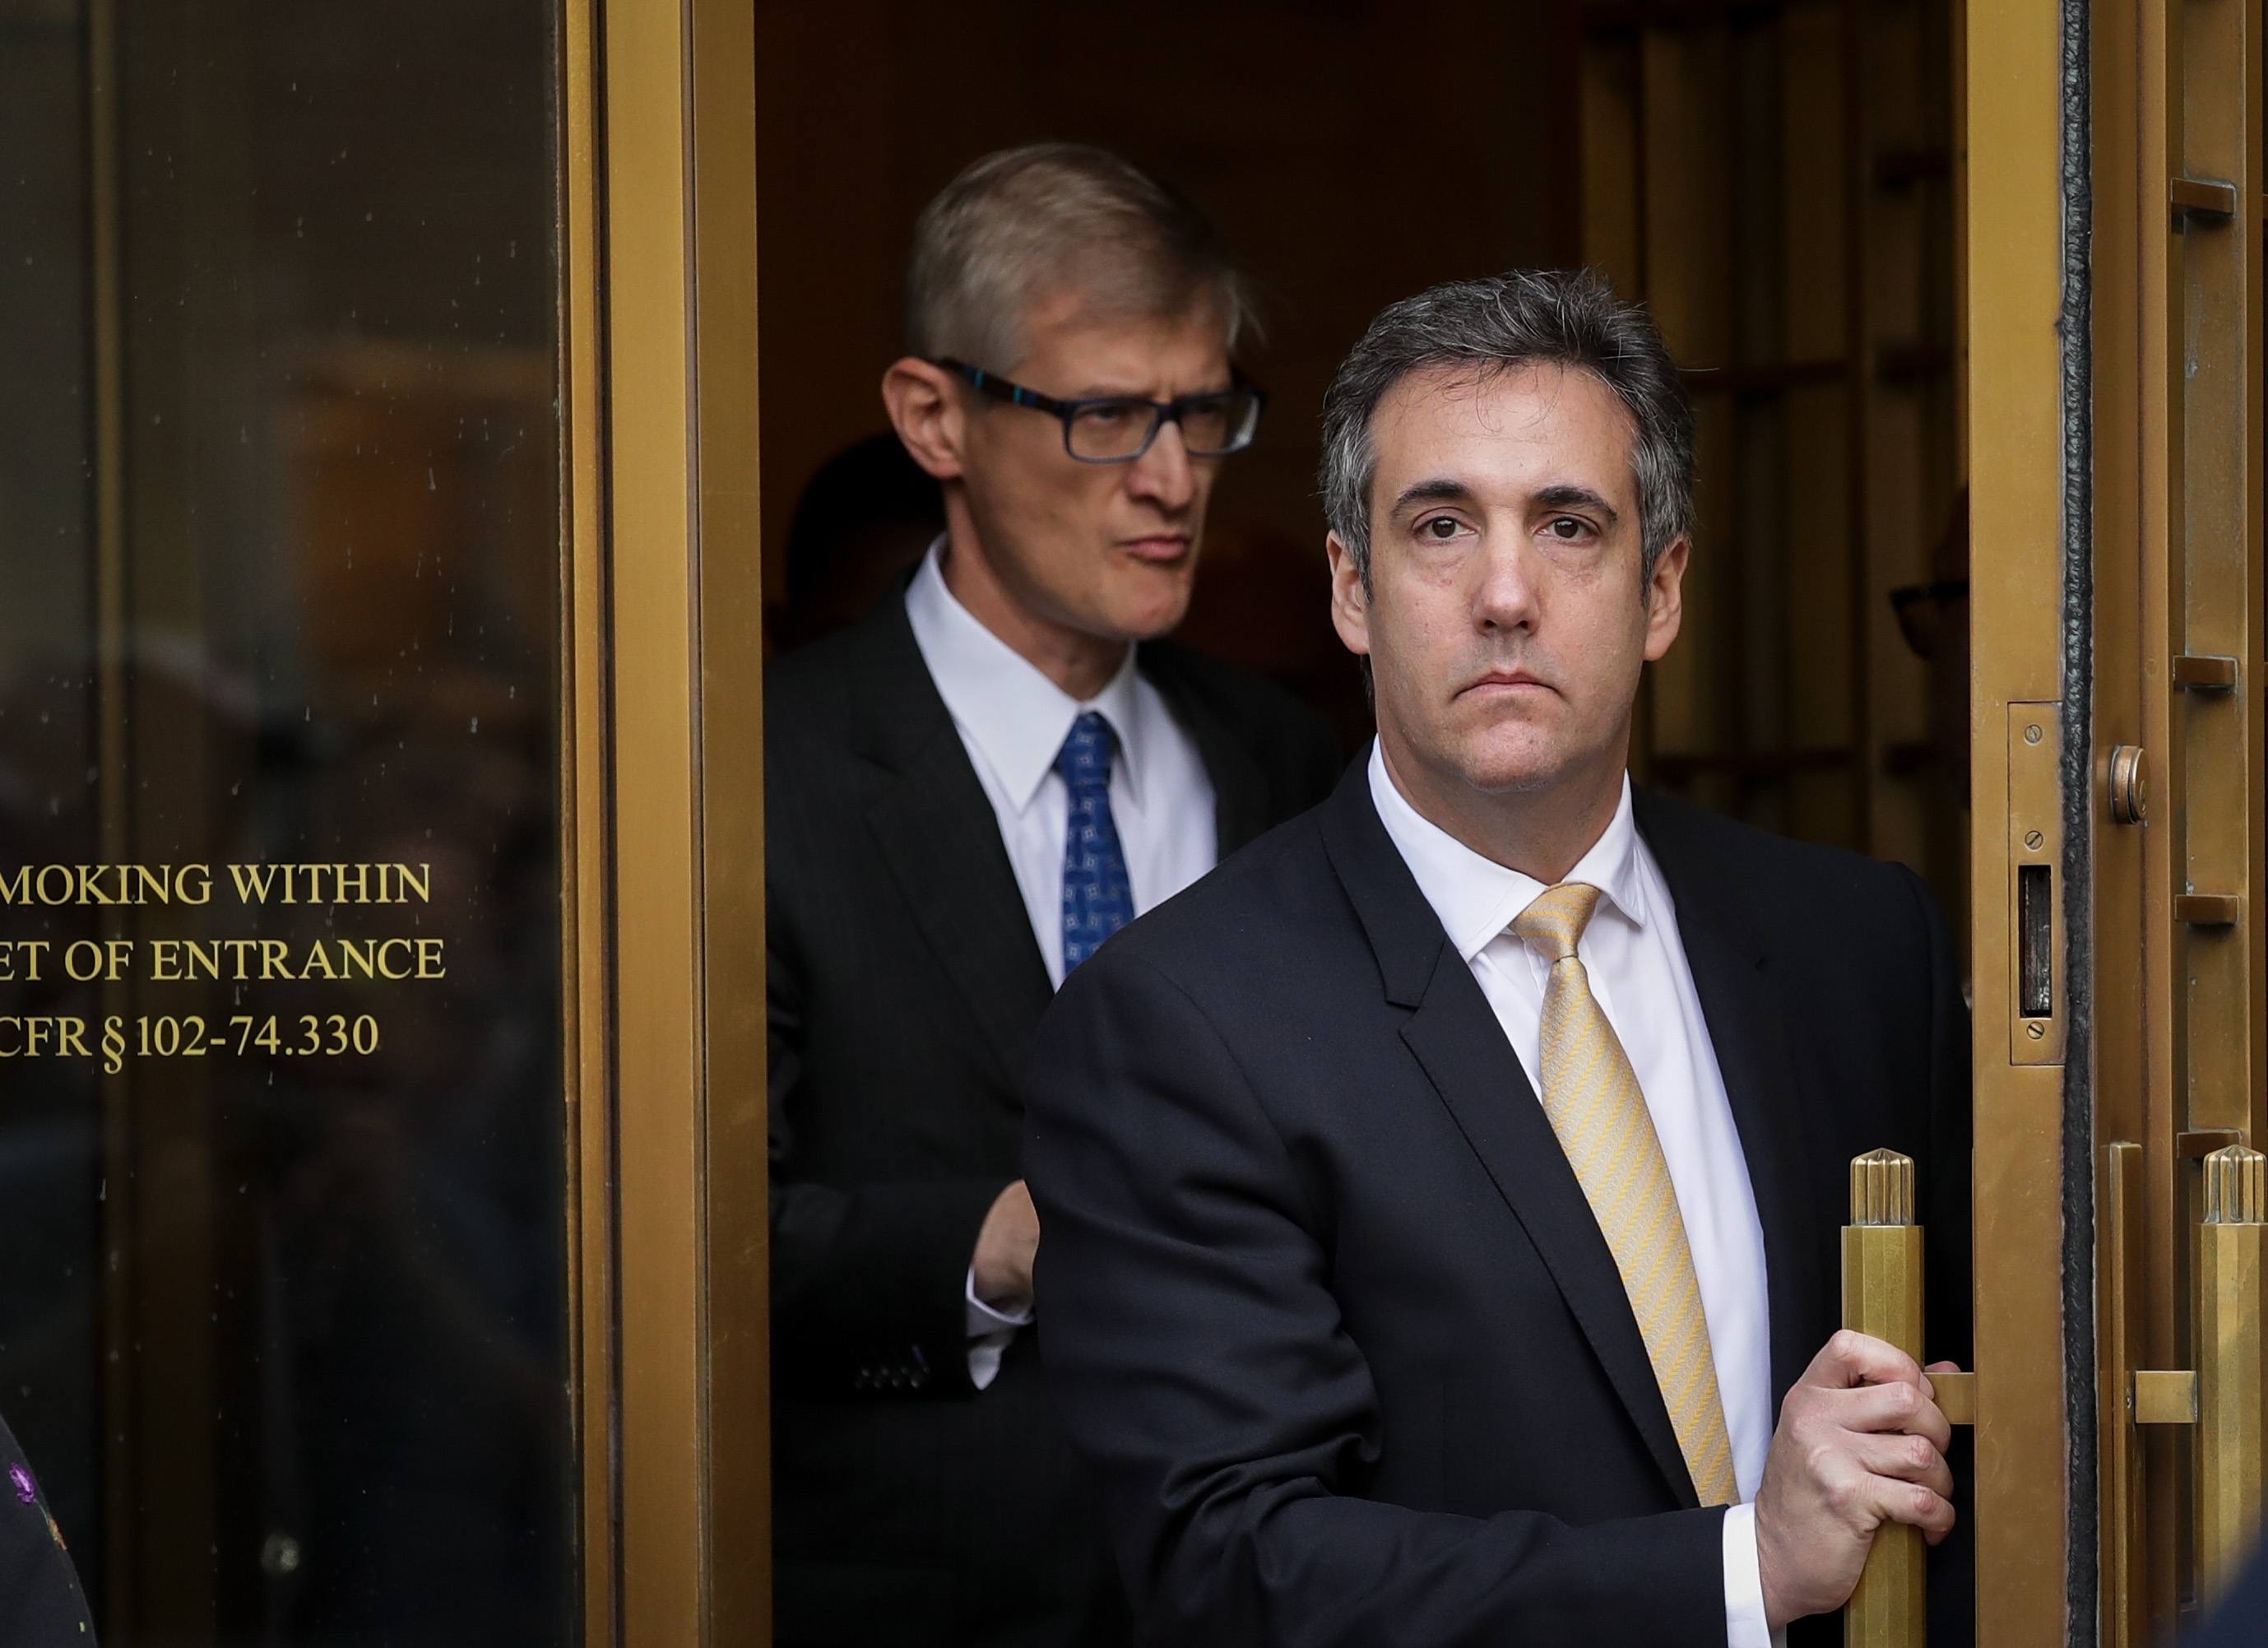 NEW YORK, NY - AUGUST 21: Michael Cohen, President Donald Trump's former personal attorney and fixer, exits federal court, August 21, 2018 in New York City. Cohen reached a plea agreement with prosecutors involving charges of bank fraud, tax fraud and campaign finance violations. (Photo by Drew Angerer/Getty Images)